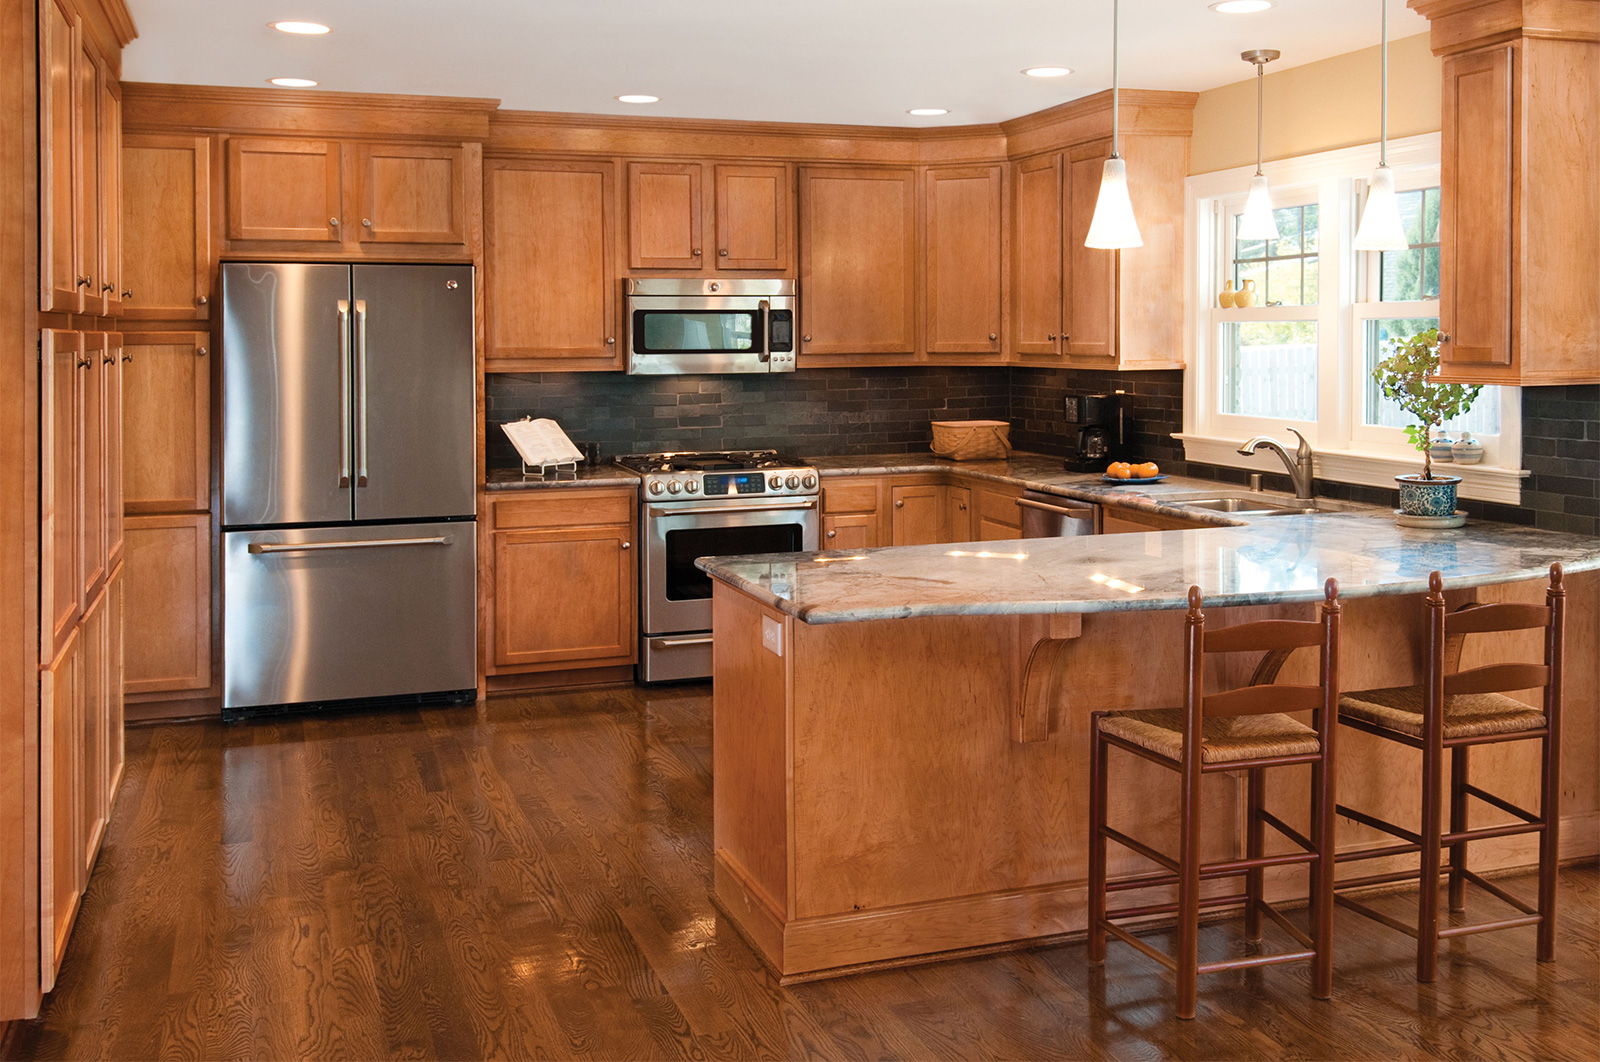 Refinishing - Beautiful Finish, LLC on What Color Countertops Go With Maple Cabinets  id=80190